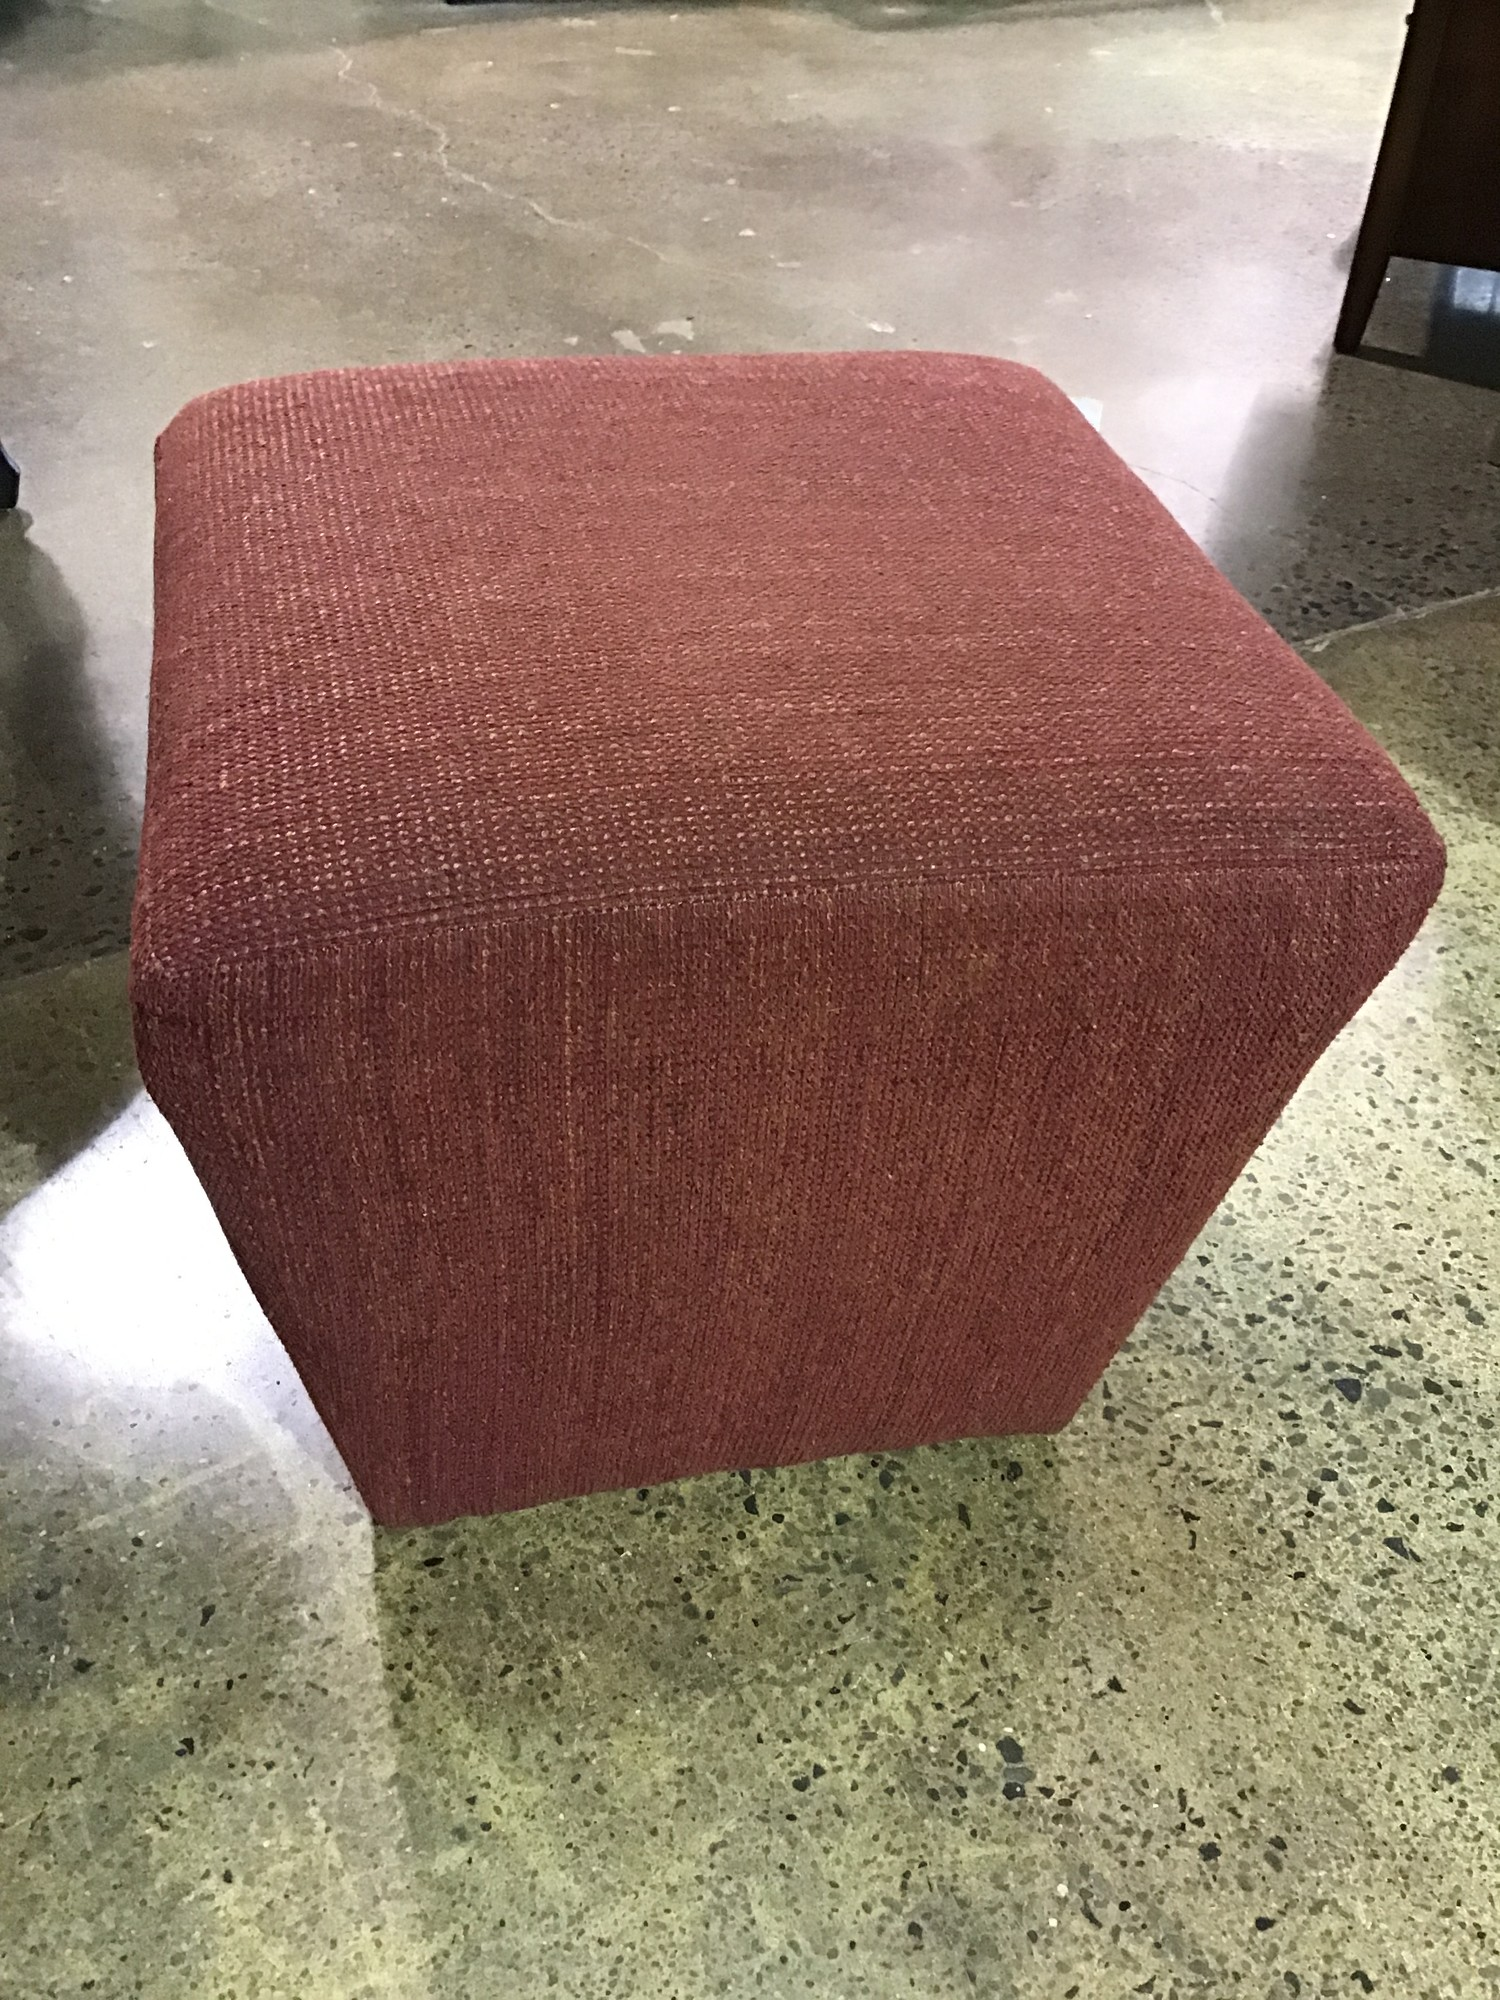 "This rust-colored cube ottoman is upholstered in a sturdy tweed fabric. Perfect ottoman for your favorite chair or to be used as extra seating. We have 2 of these which could be combined to form an upholstered coffee table!<br /> Dimensions are 18"" x 18"" x 19"""